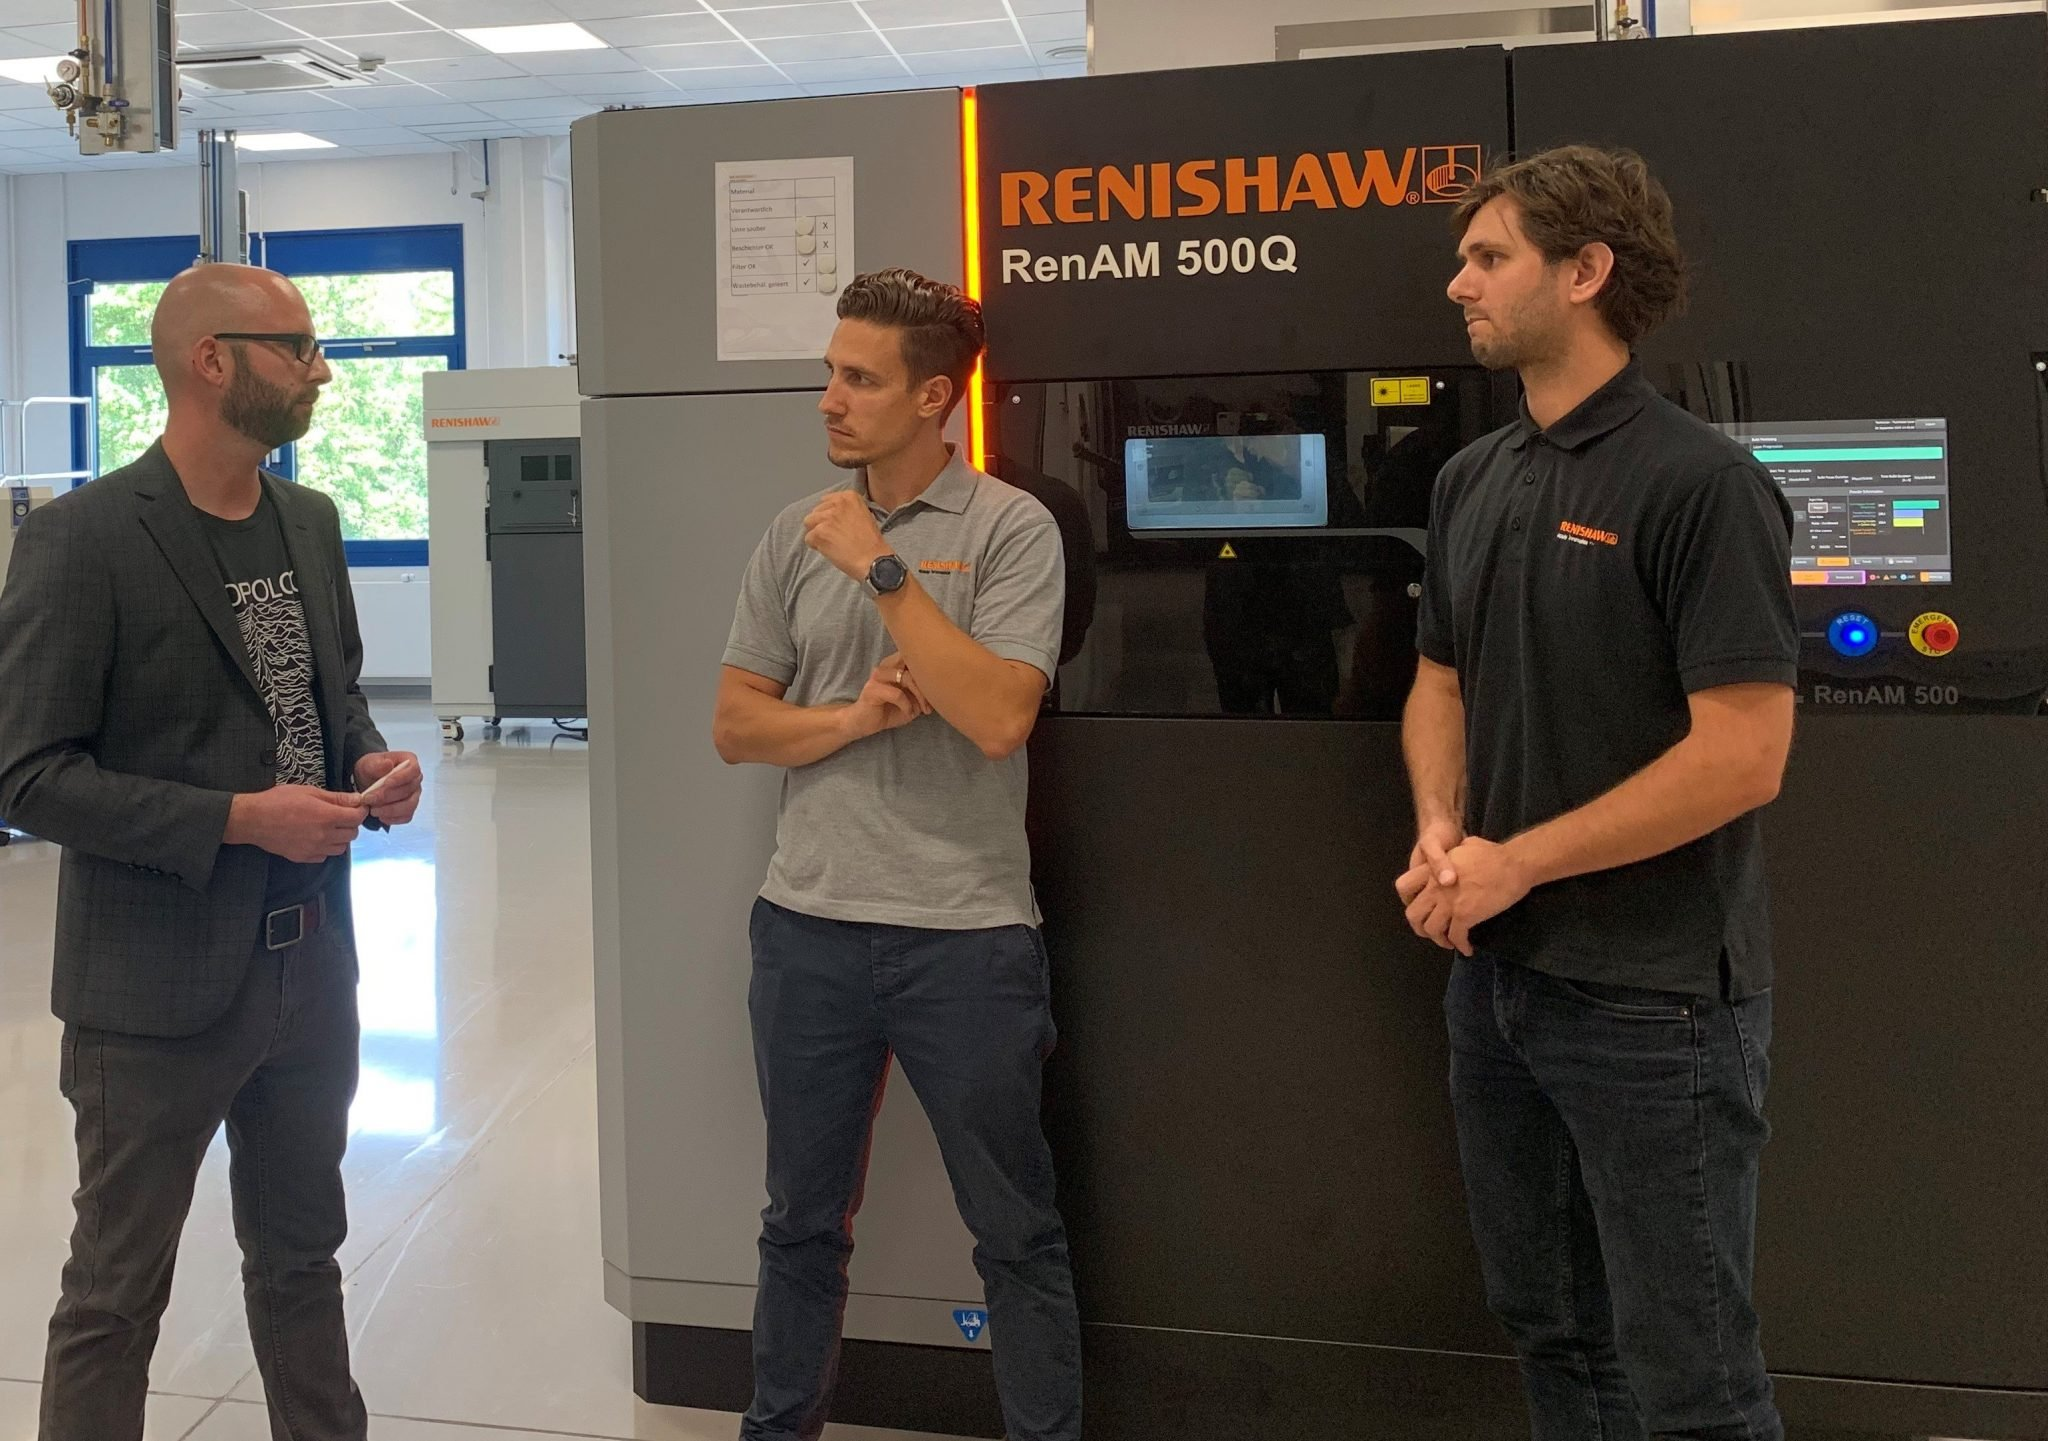 nTopology and Renishaw Employees in front of a RenAM 500Q 3d Printer